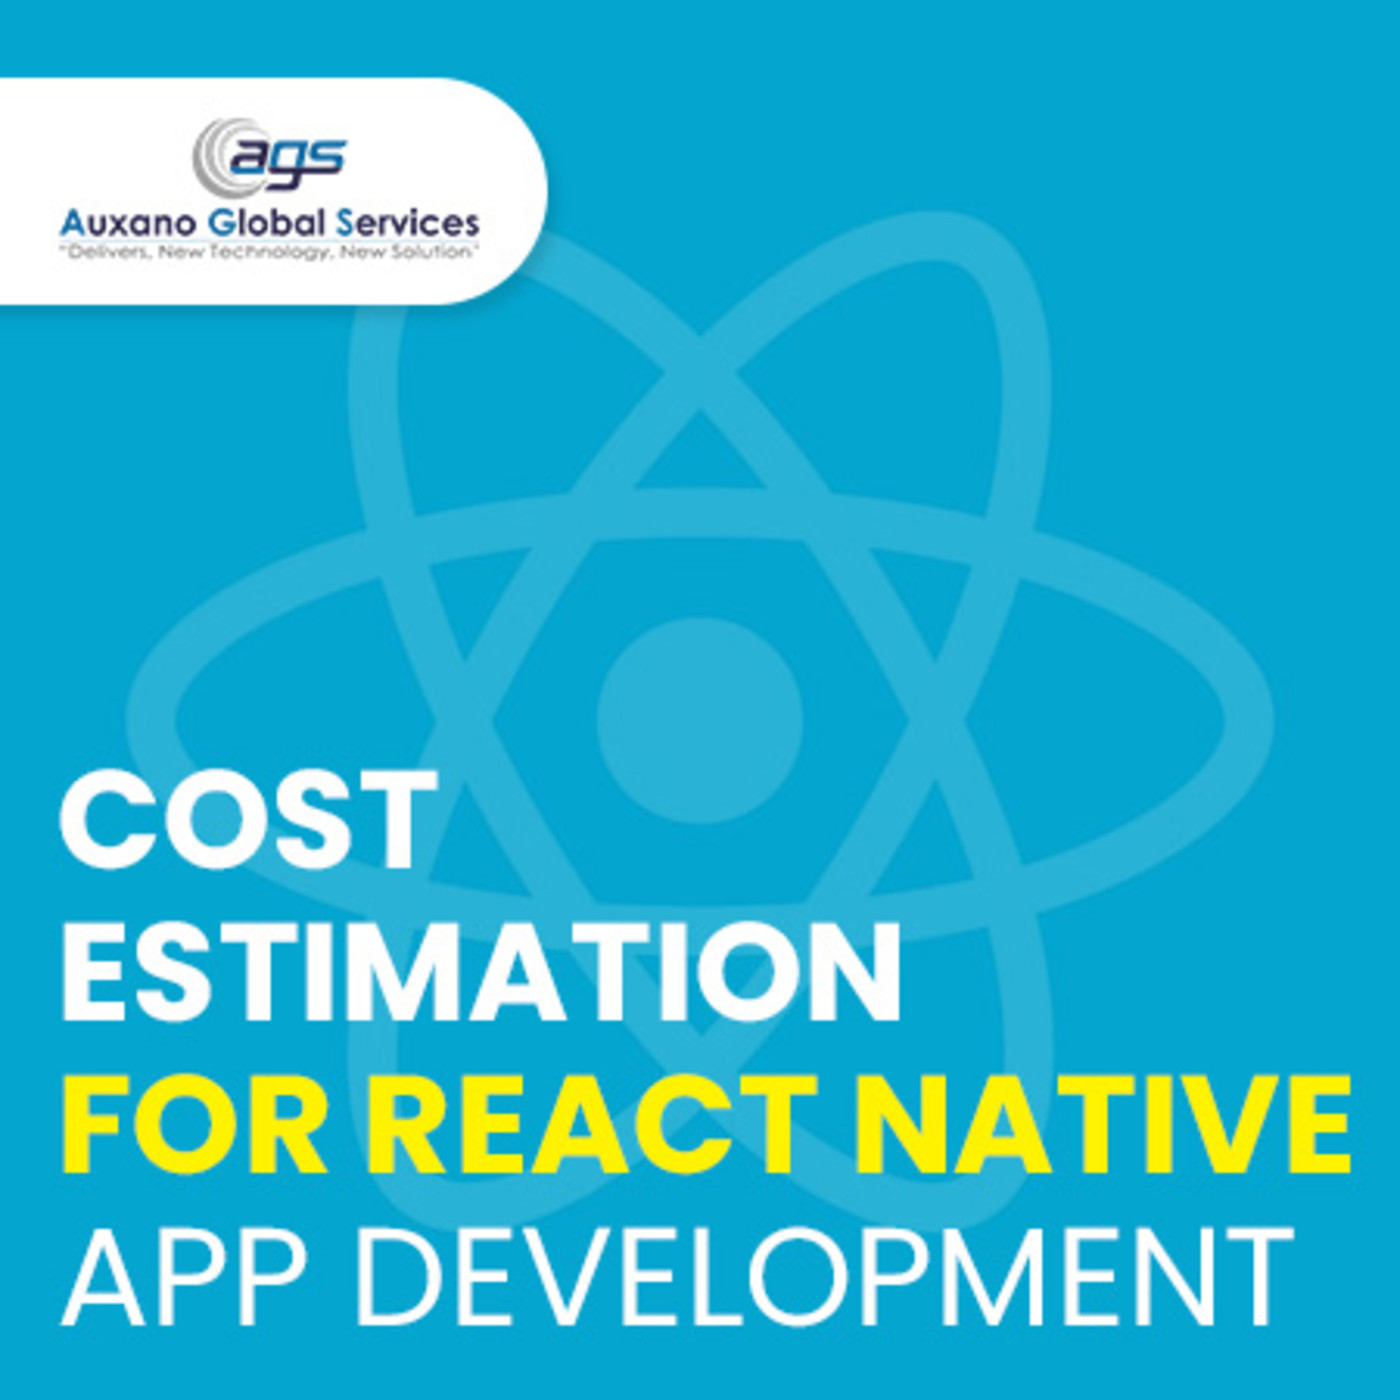 THE COST OF A REACT NATIVE APP IN 2021 - Auxano Global Services